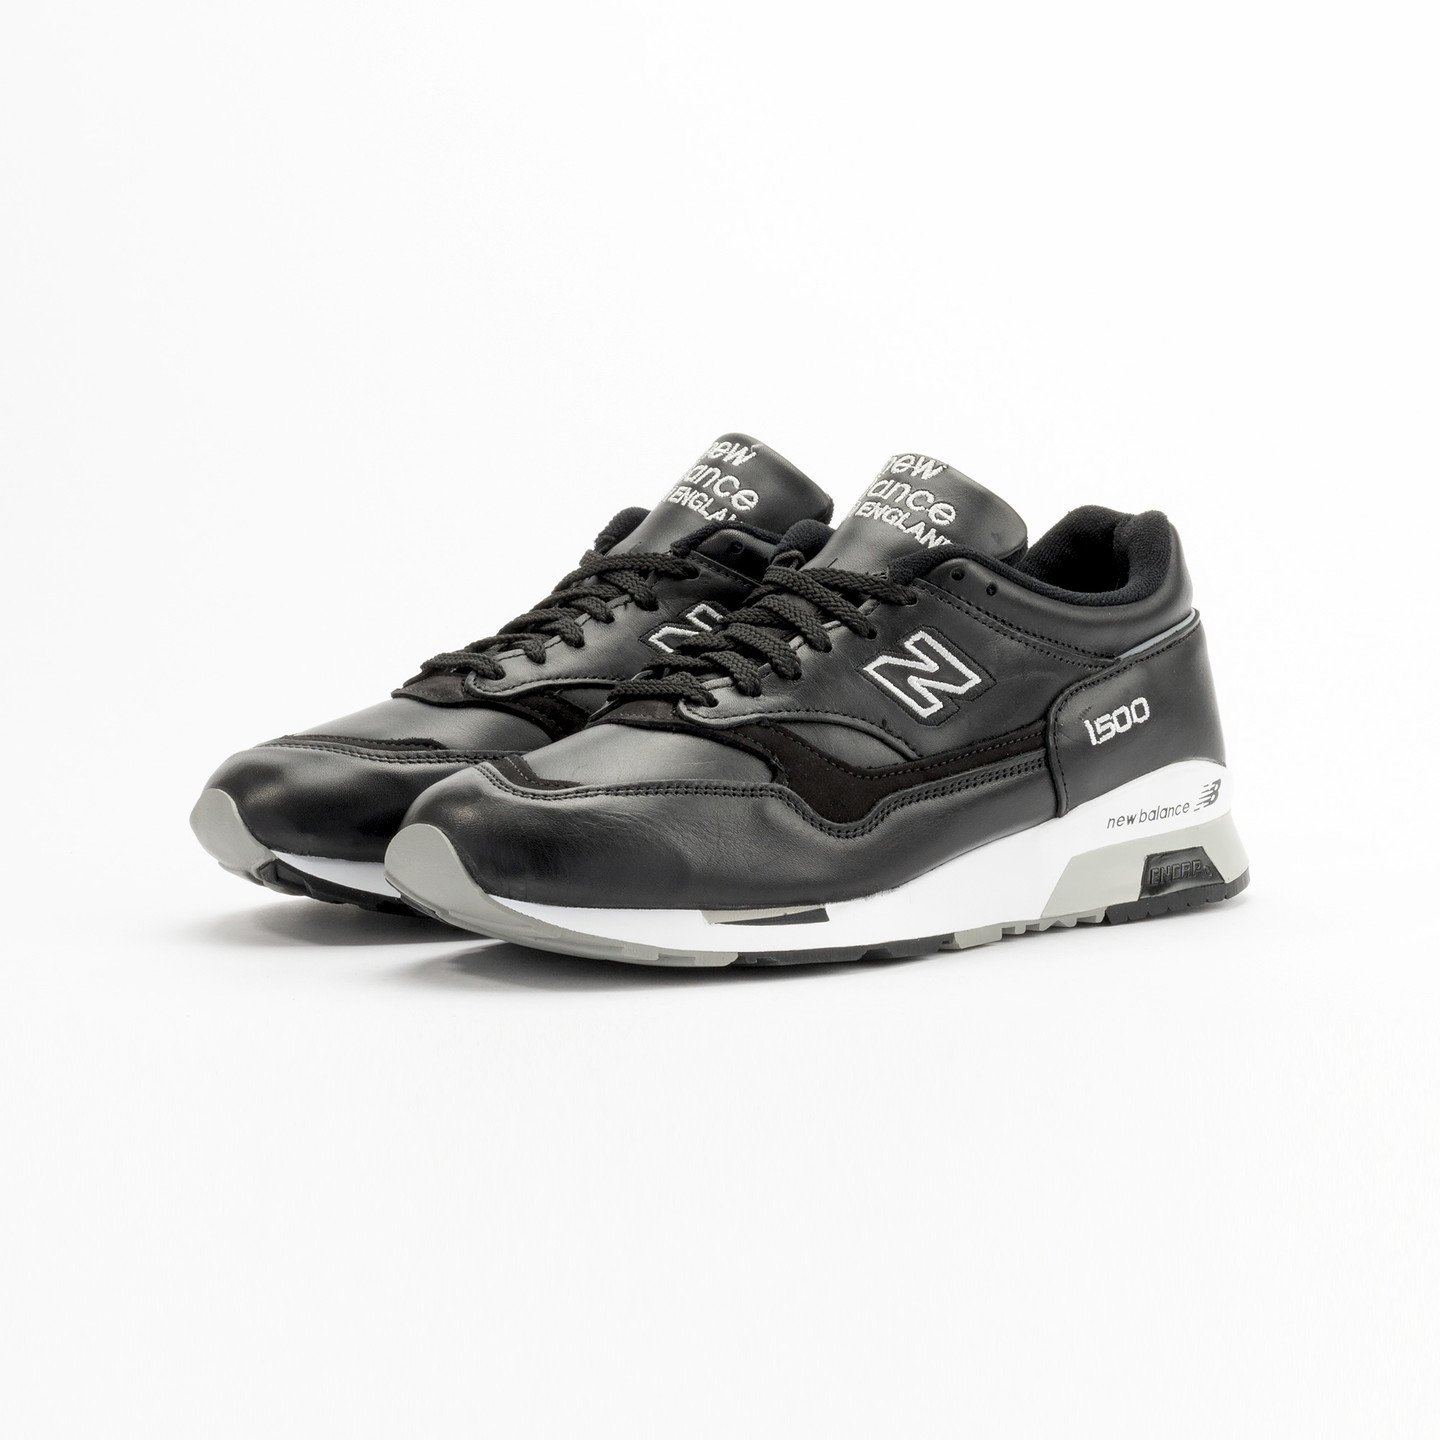 New Balance M1500 BK - Made in England Black / White Shadow M1500BK-45